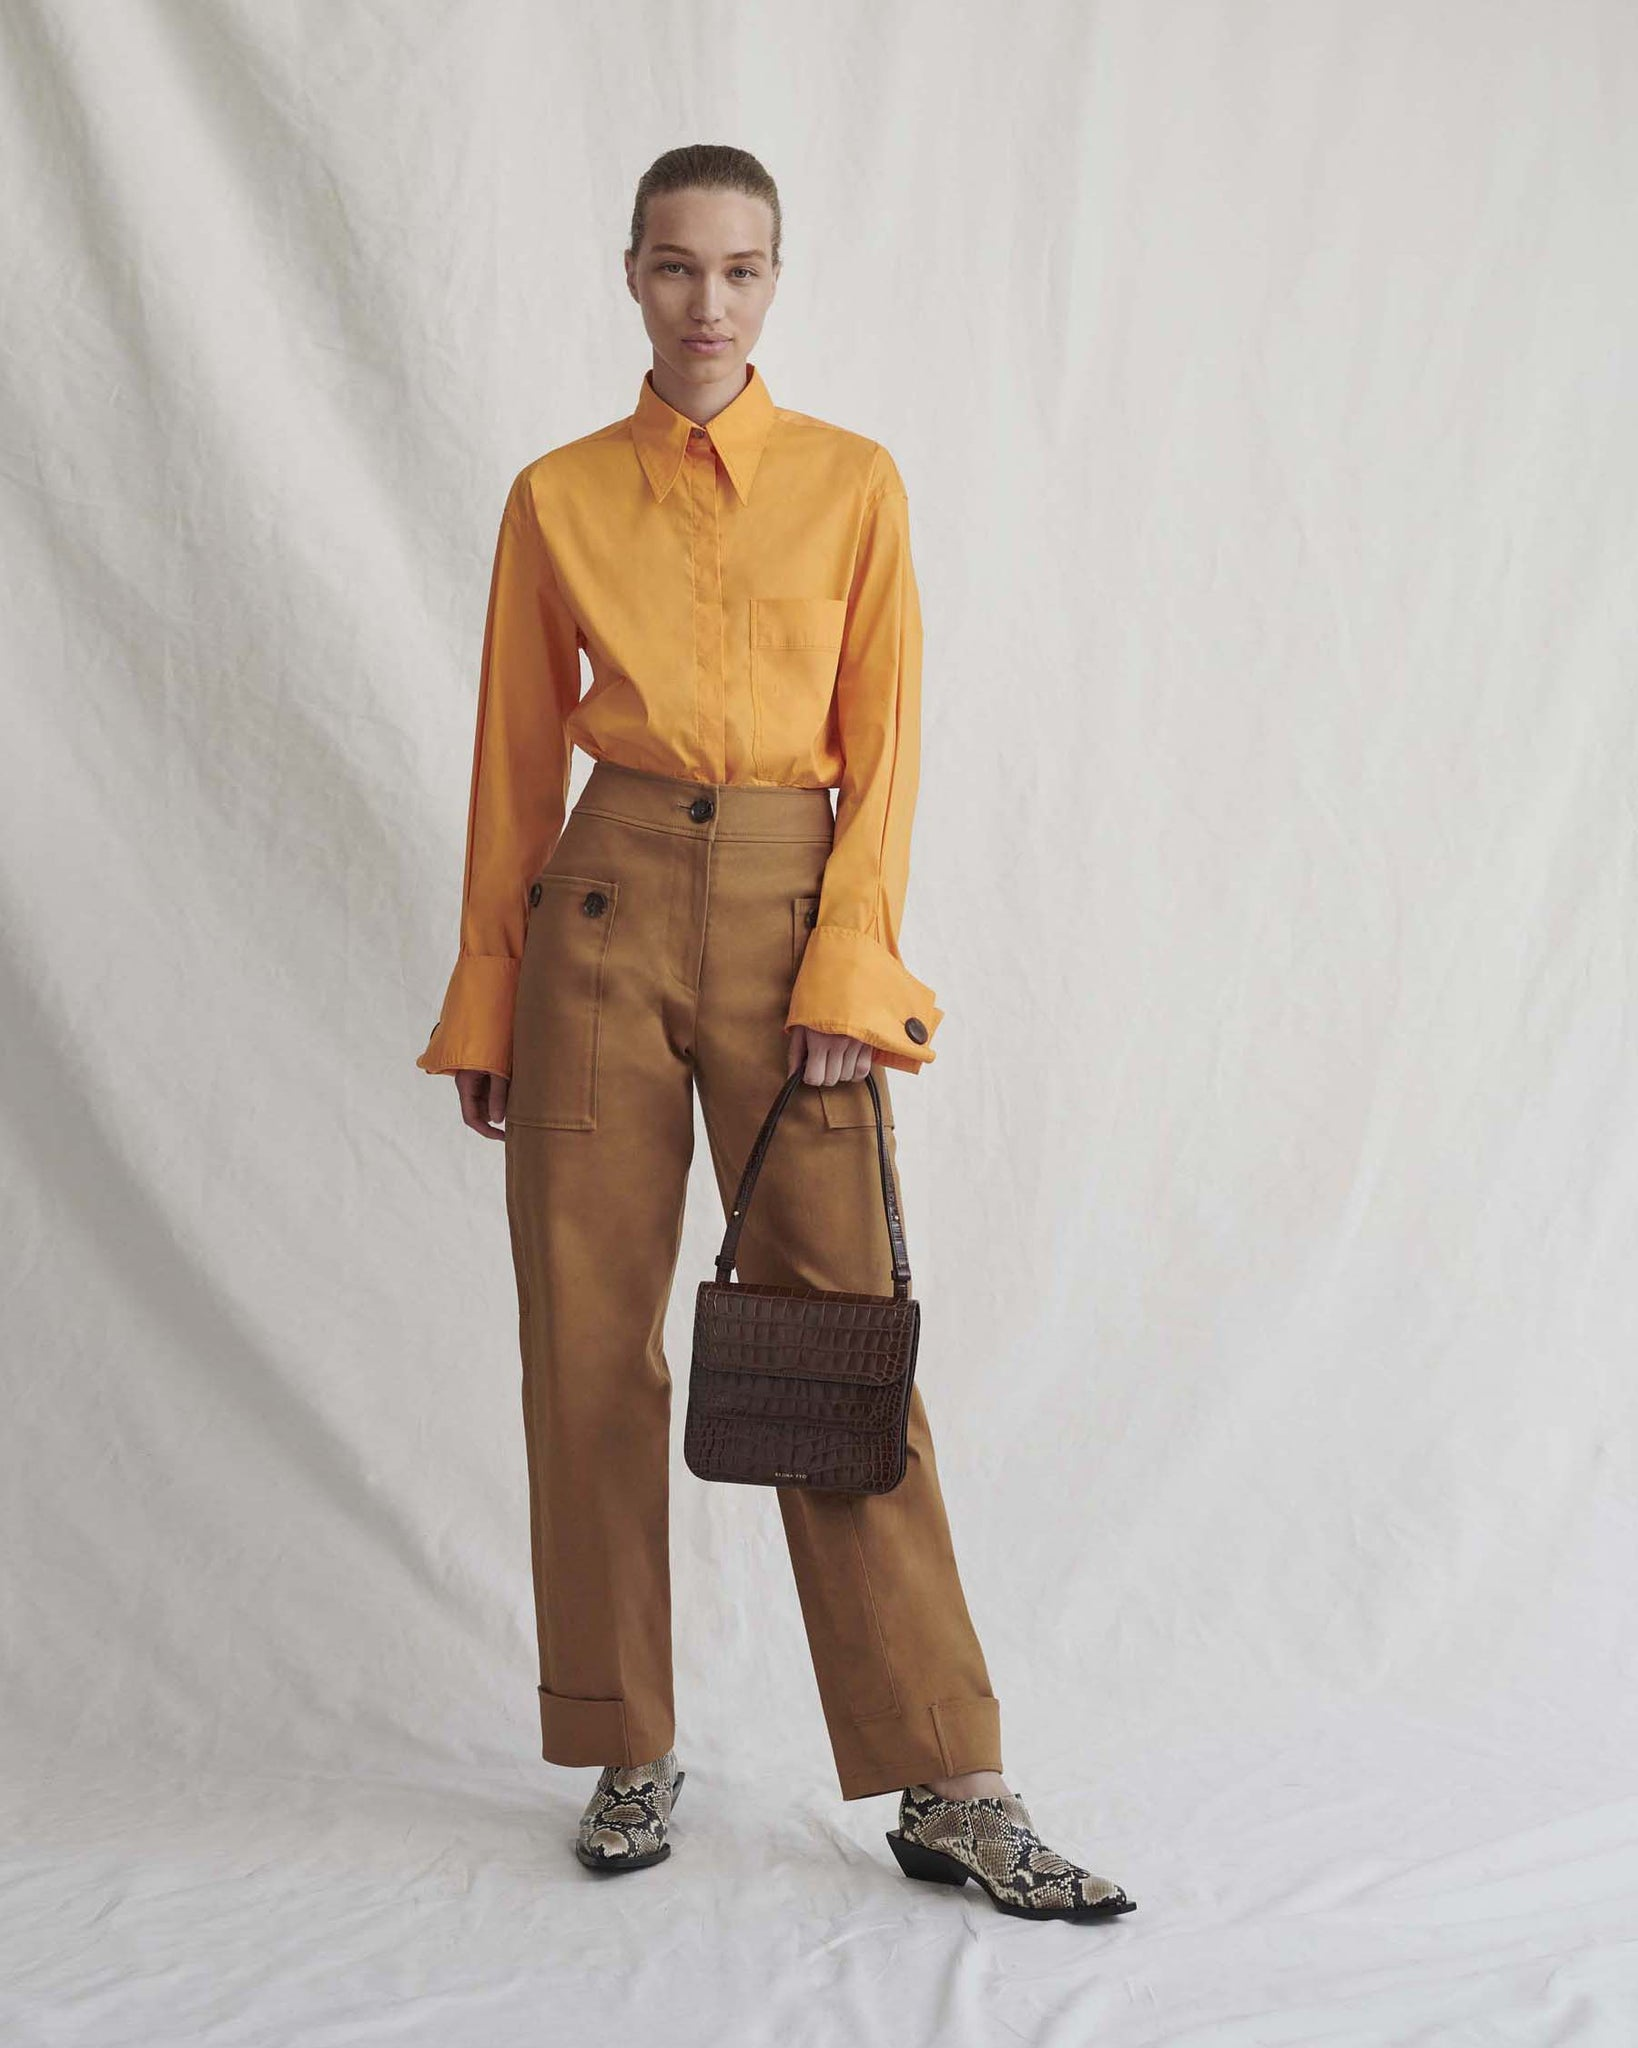 Hazel Trousers Cotton Twill Camel - SPECIAL PRICE